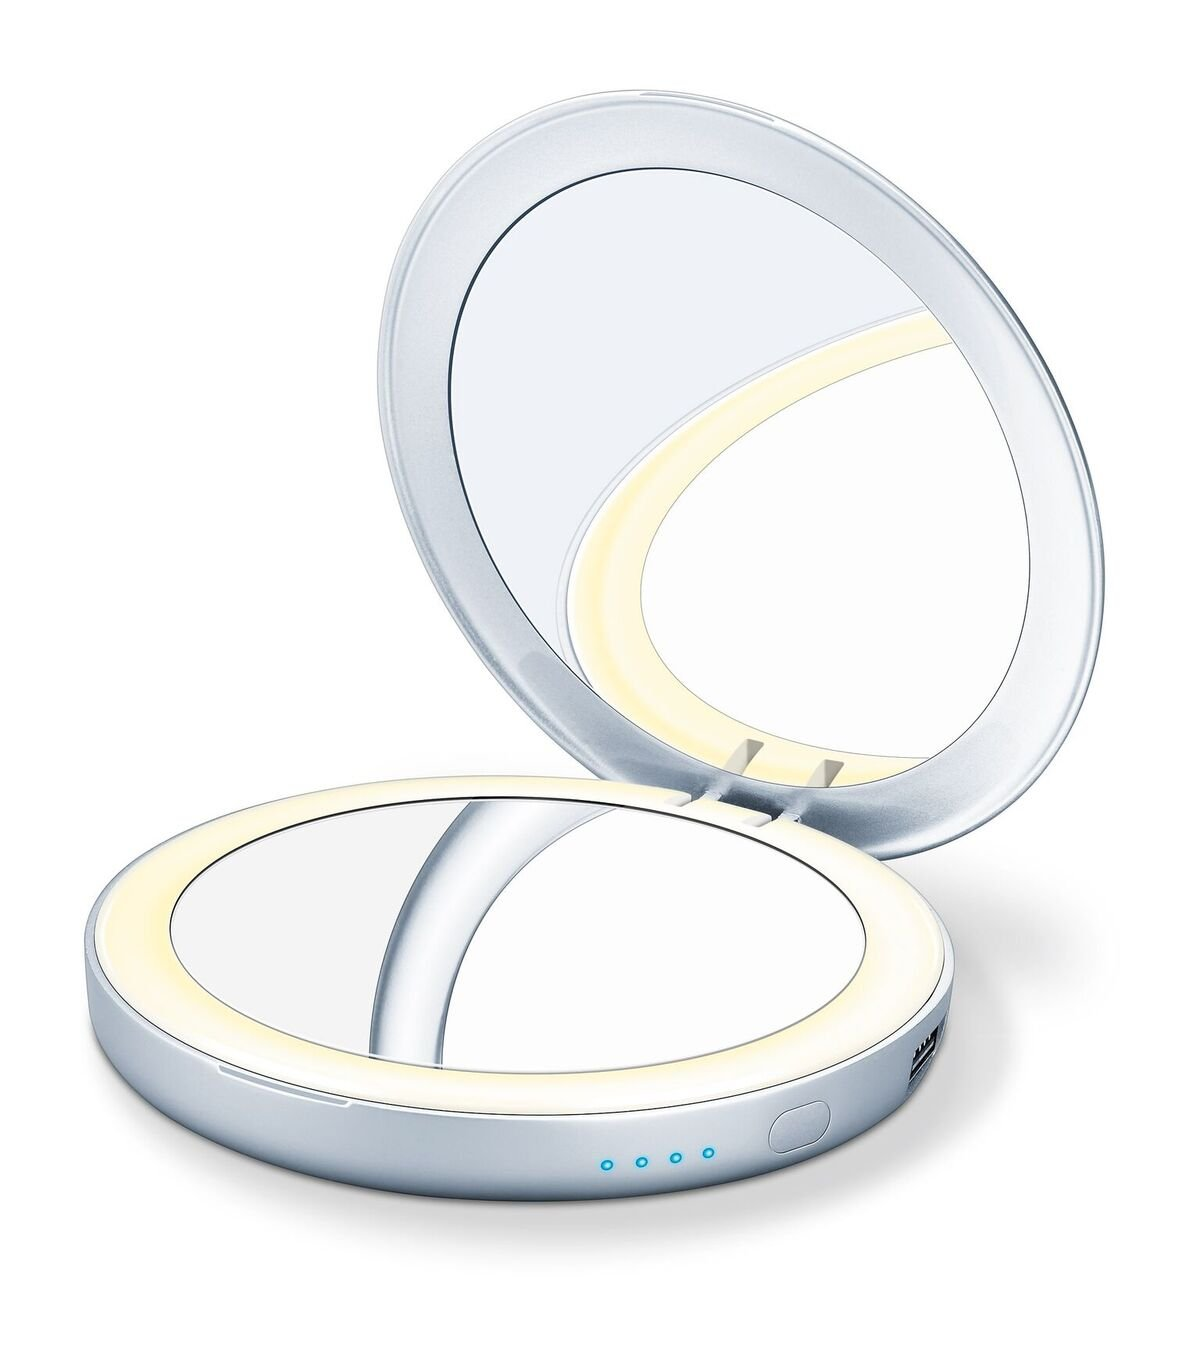 Beurer - BS39 Illuminated Cosmetics Mirror & Powerbank - 3 Years Warranty